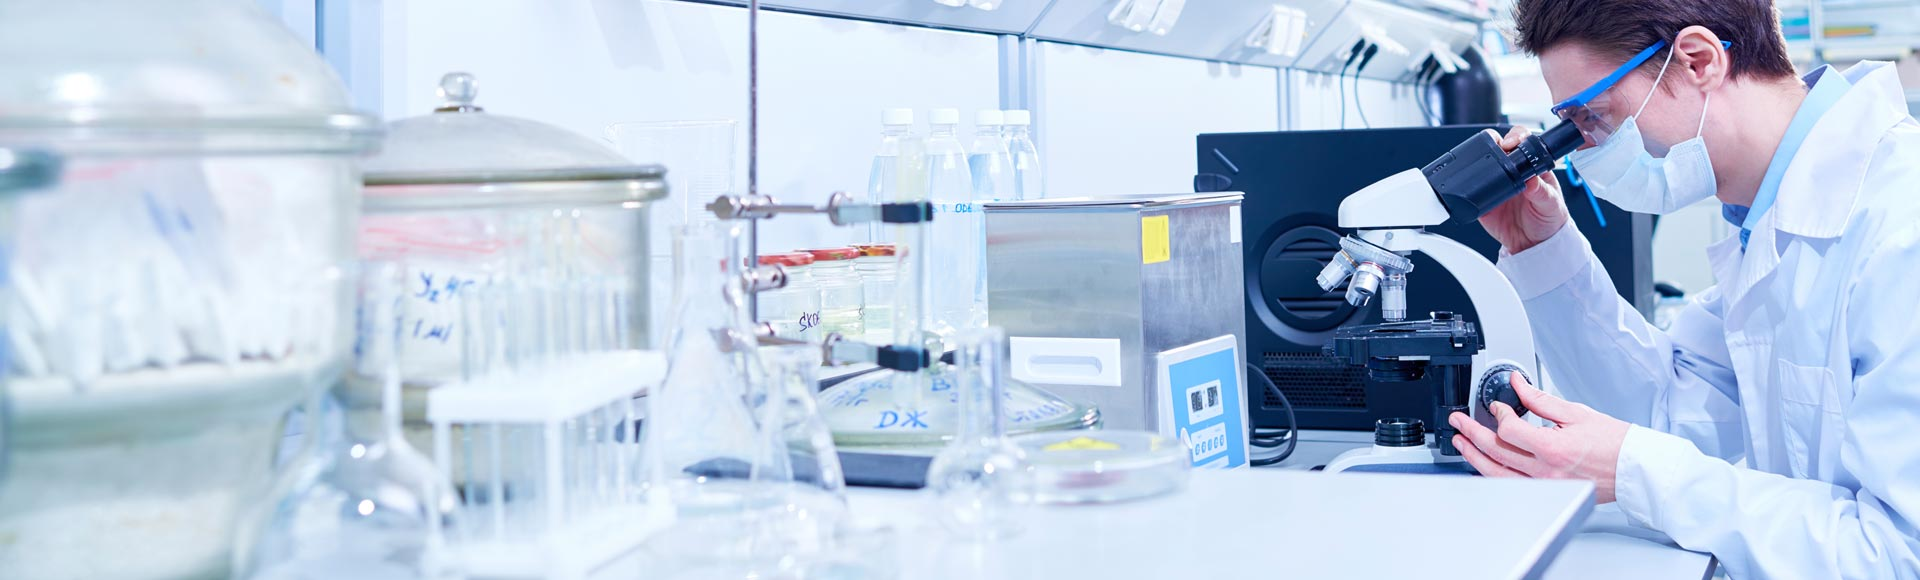 Knowing the Utility of Laboratory Apparatus